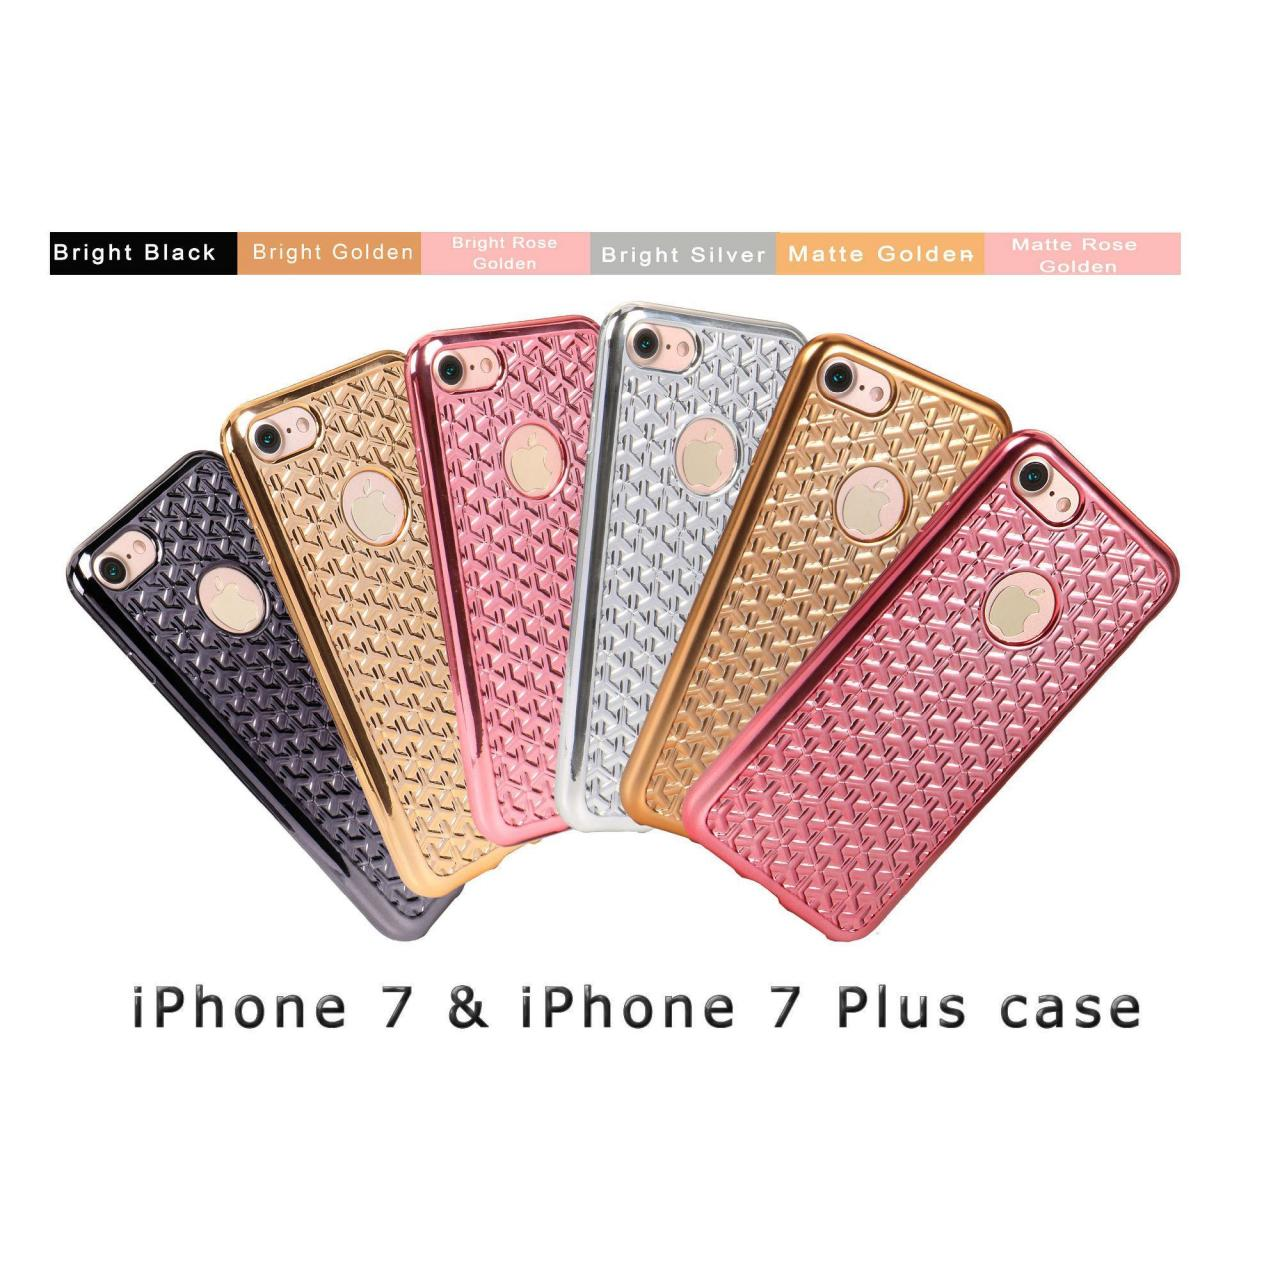 iPhone 7 (7pro) Case/Woven Pattern Electroplated iphone 7 case